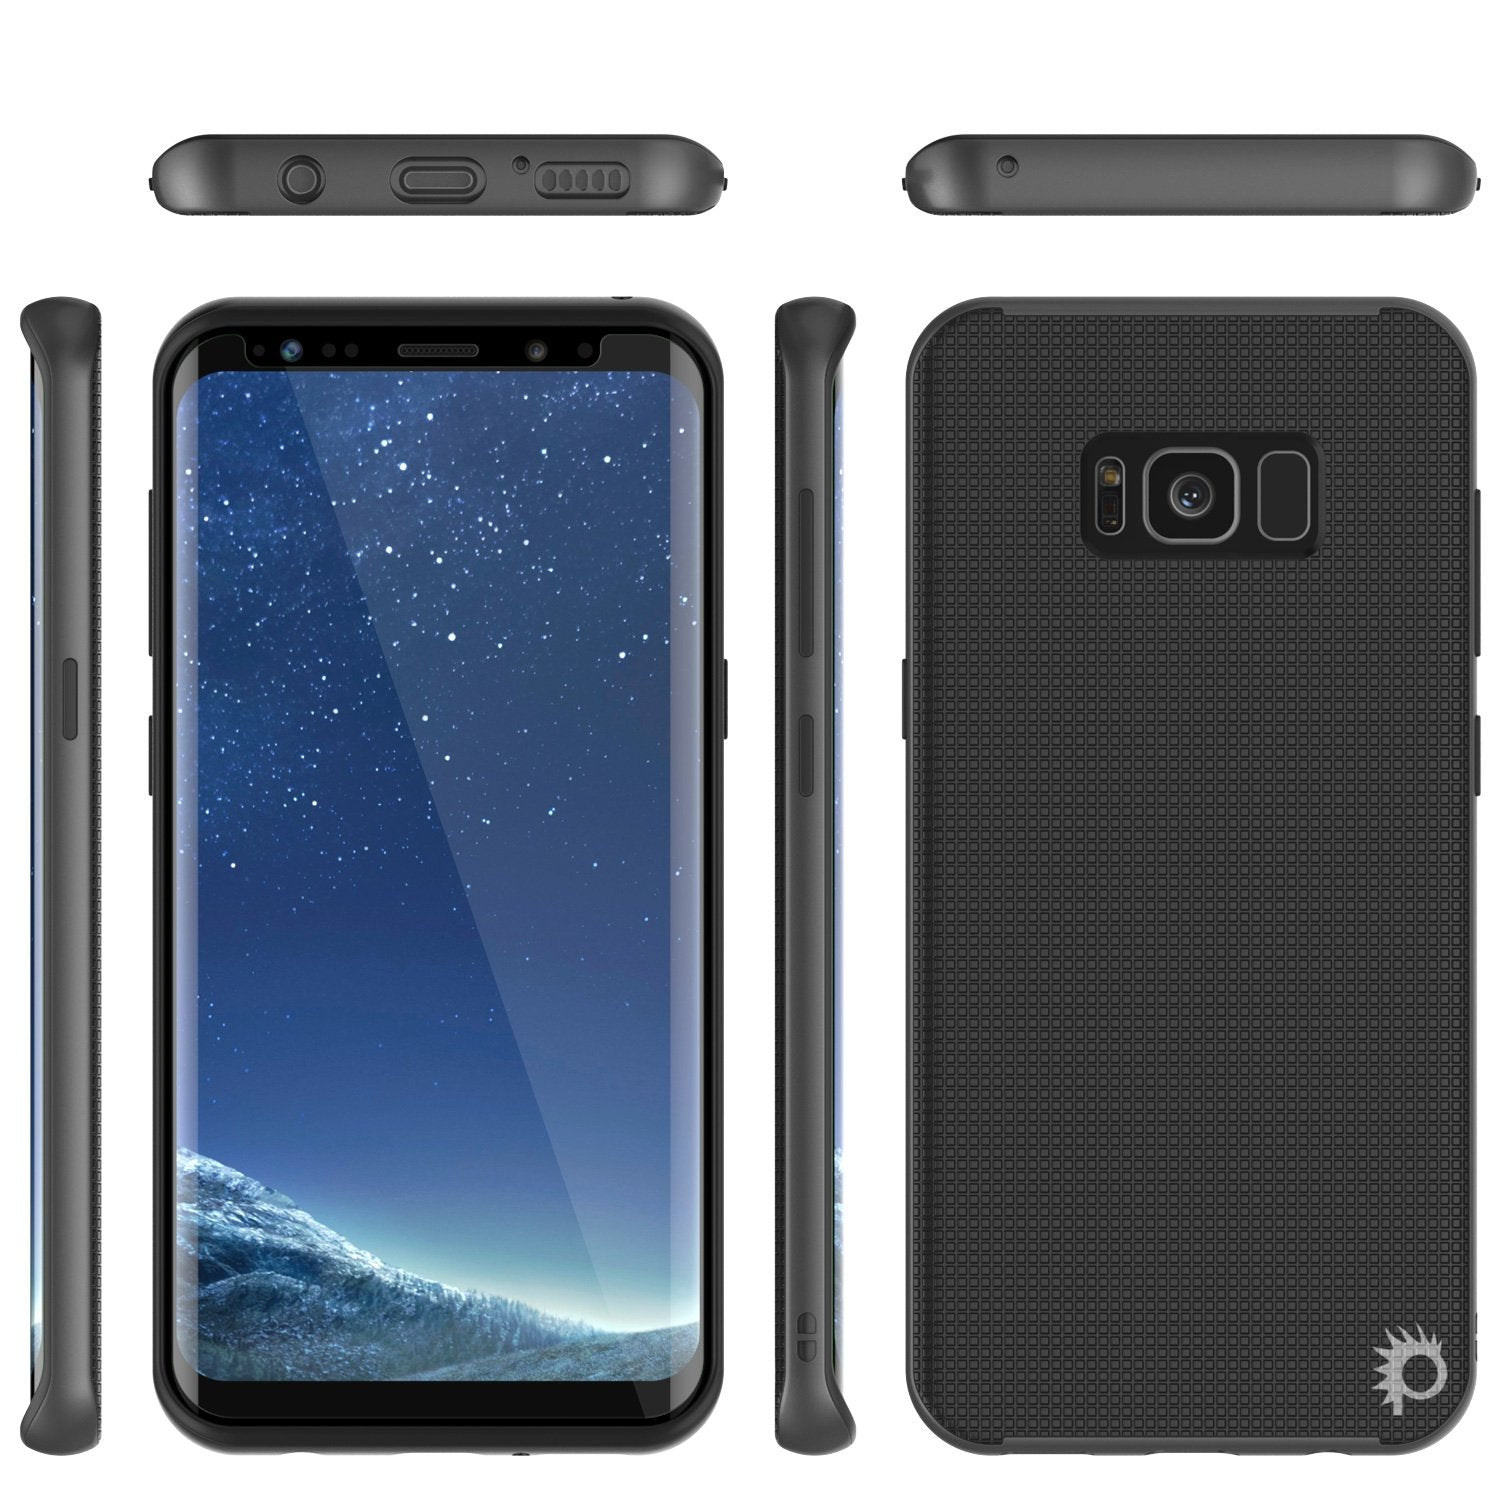 Galaxy S8 Case, PunkCase [Stealth Series] Hybrid 3-Piece Shockproof Dual Layer Cover [Non-Slip] [Soft TPU + PC Bumper] with PUNKSHIELD Screen Protector for Samsung S8 Edge [Grey] - PunkCase NZ